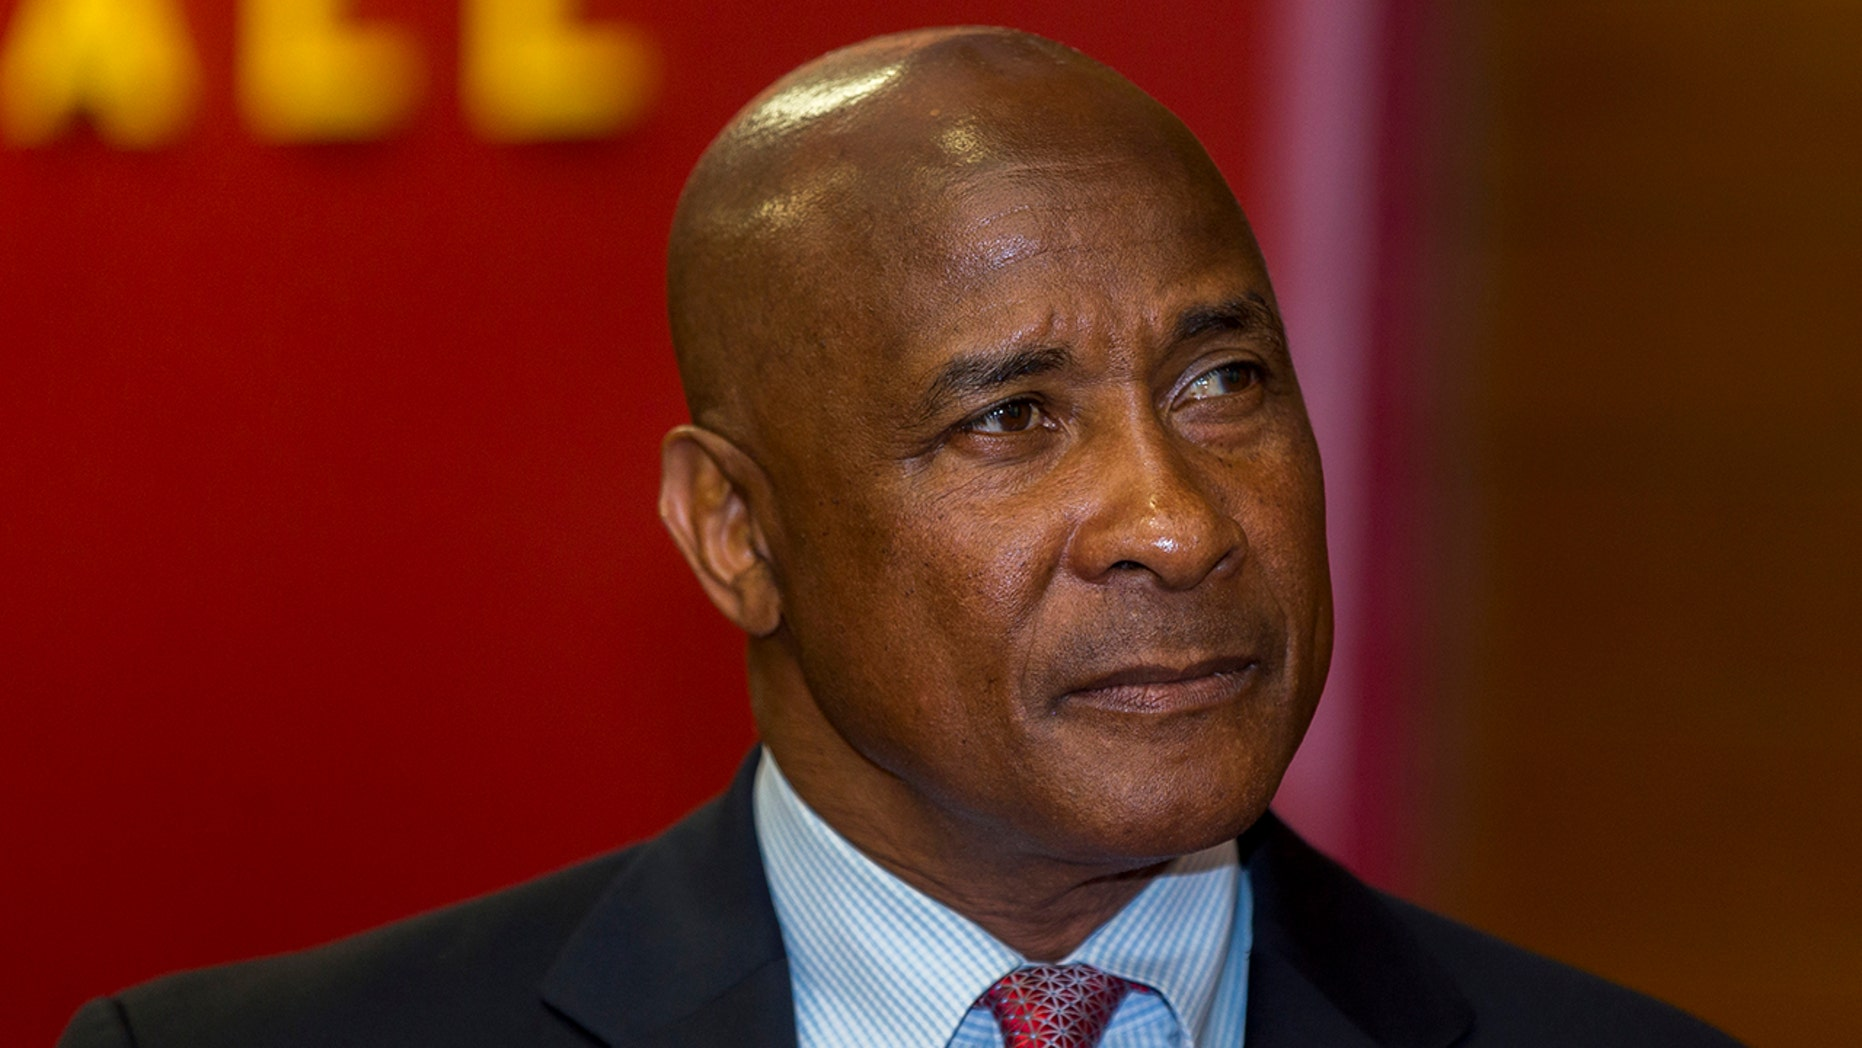 Lynn Swann resigns after scandal-filled USC tenure